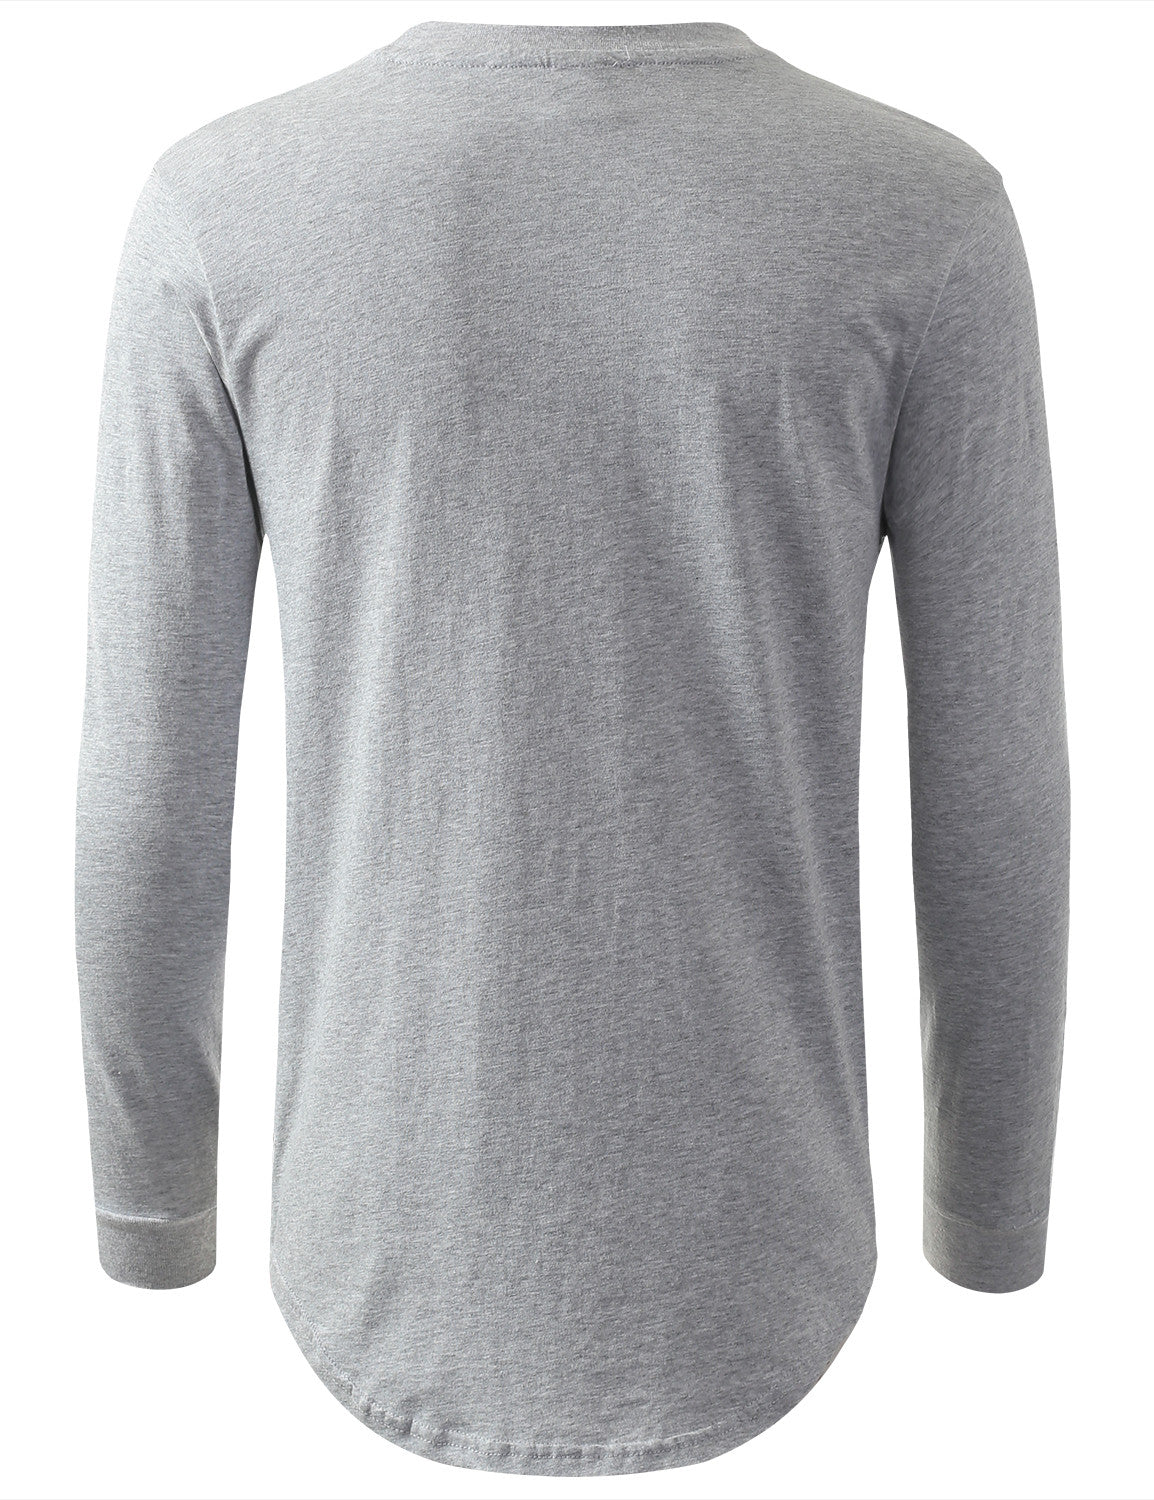 HGRAY Nylon Trim Thermal Longline Sweatshirt - URBANCREWS